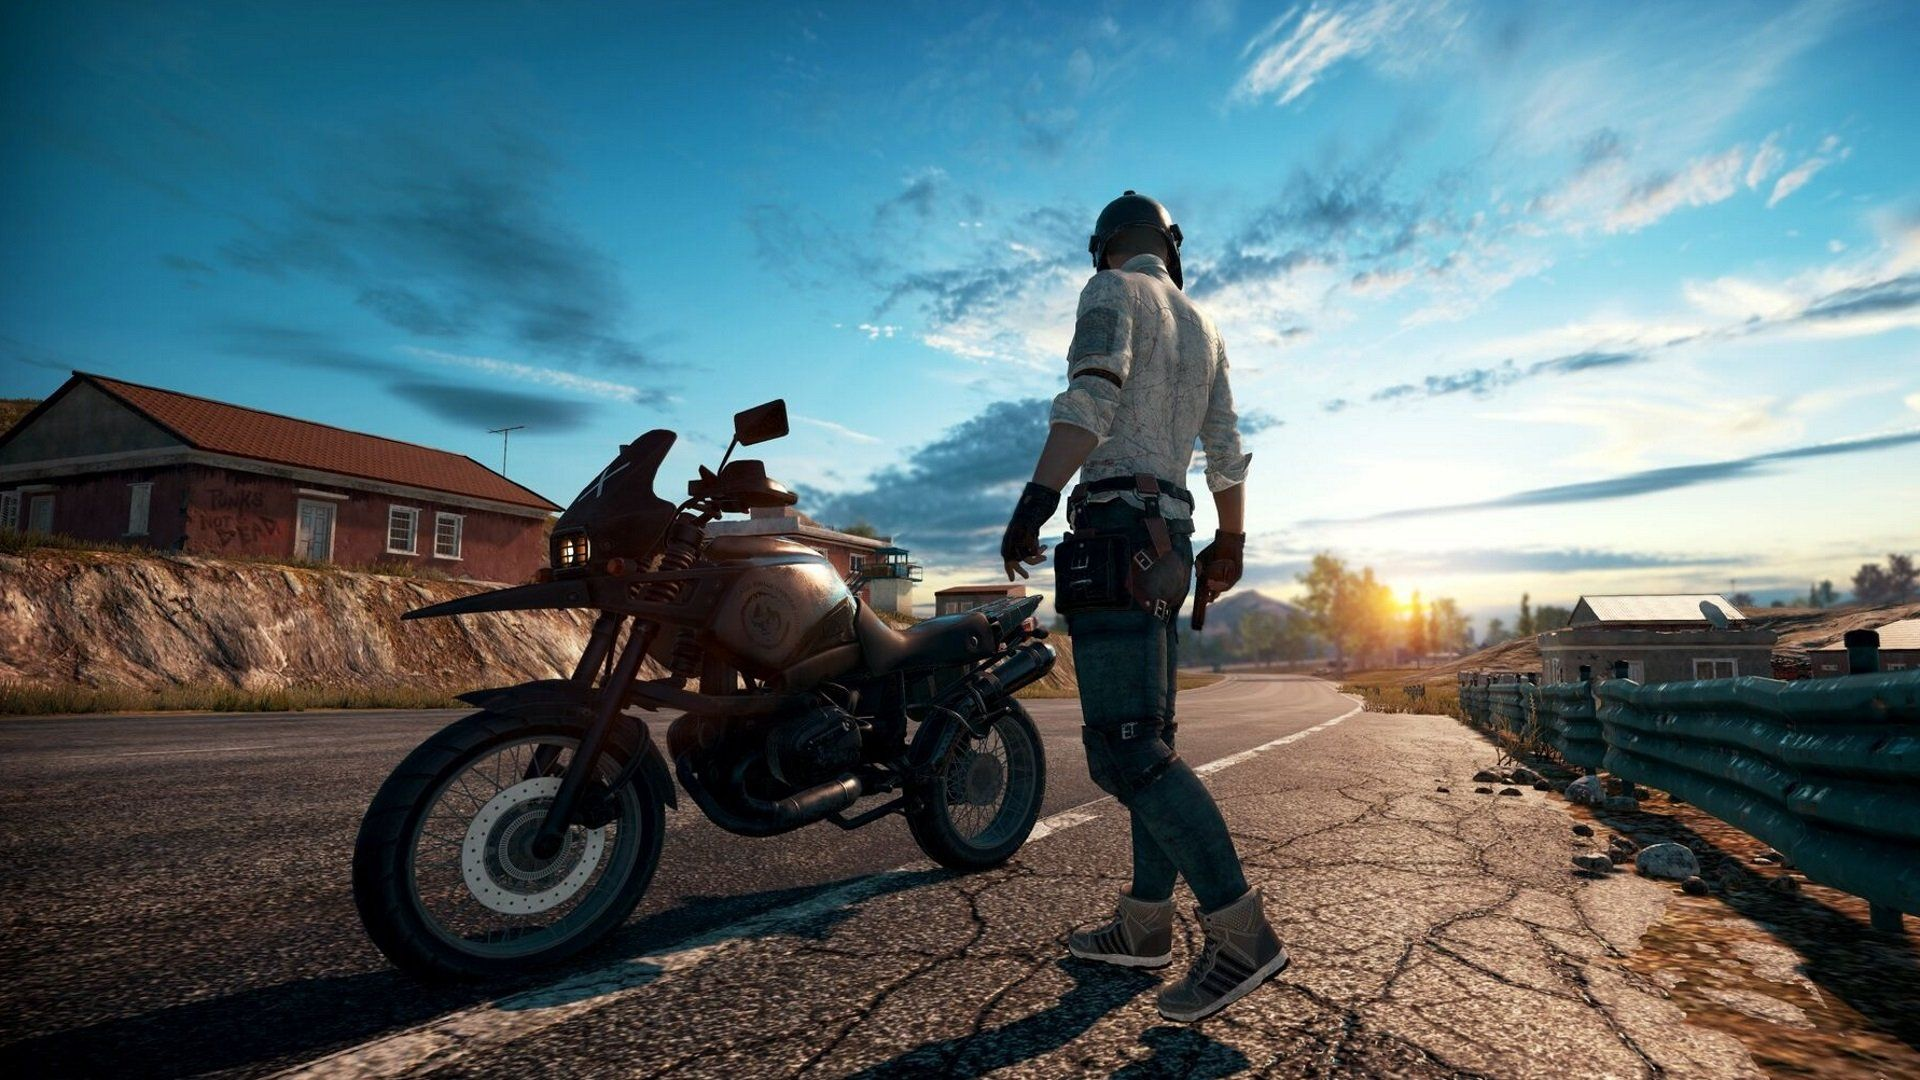 X Pubg Hd Wallpaper X Need Iphone S Plus Wallpaper